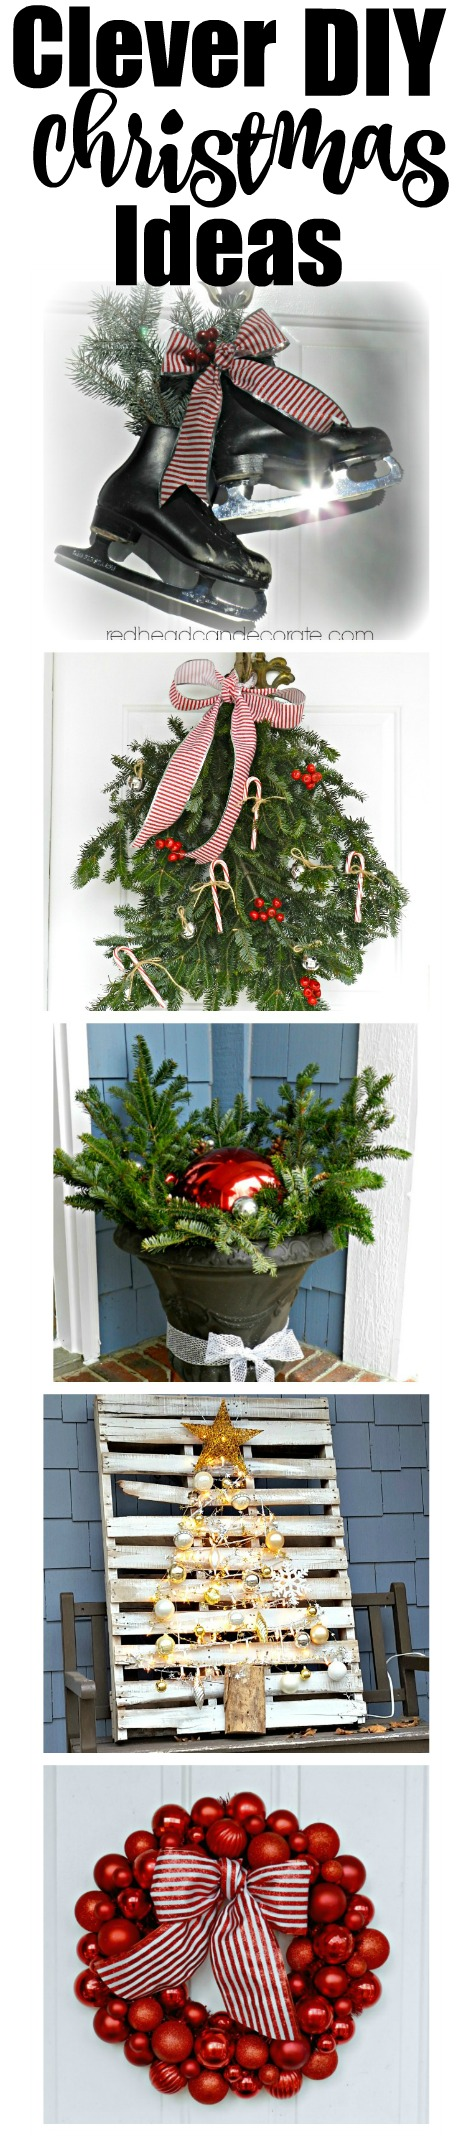 clever-christmas-ideas